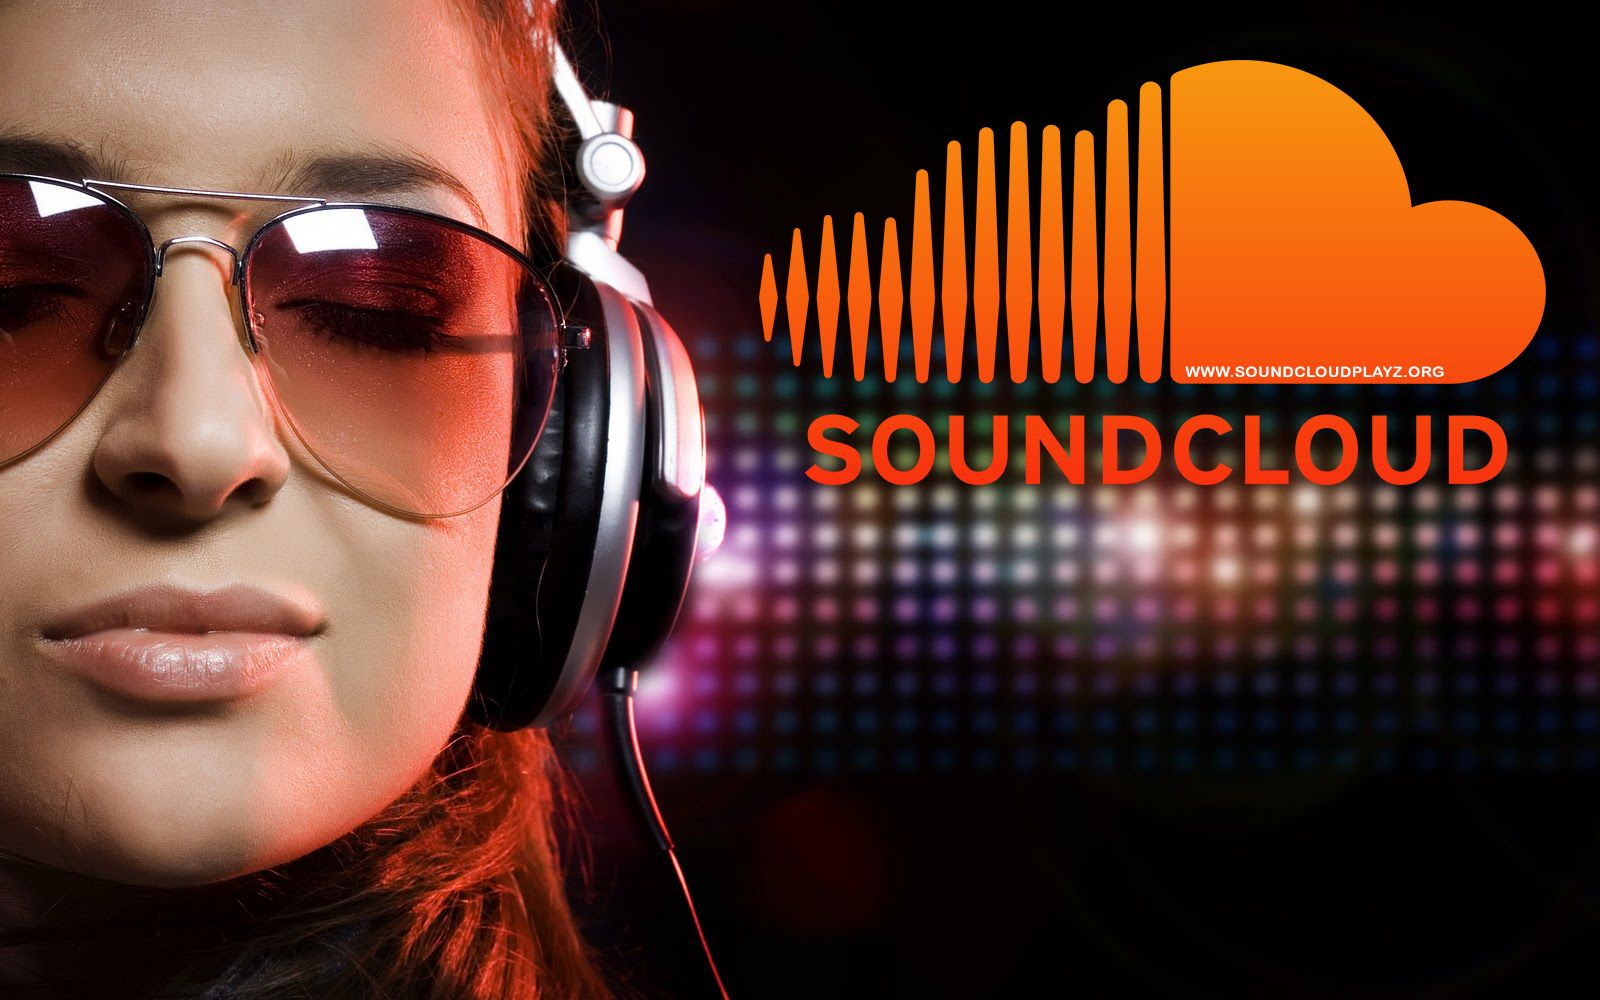 soundcloudkingz: get you 30,000 soundcloud plays in 24hours for $5